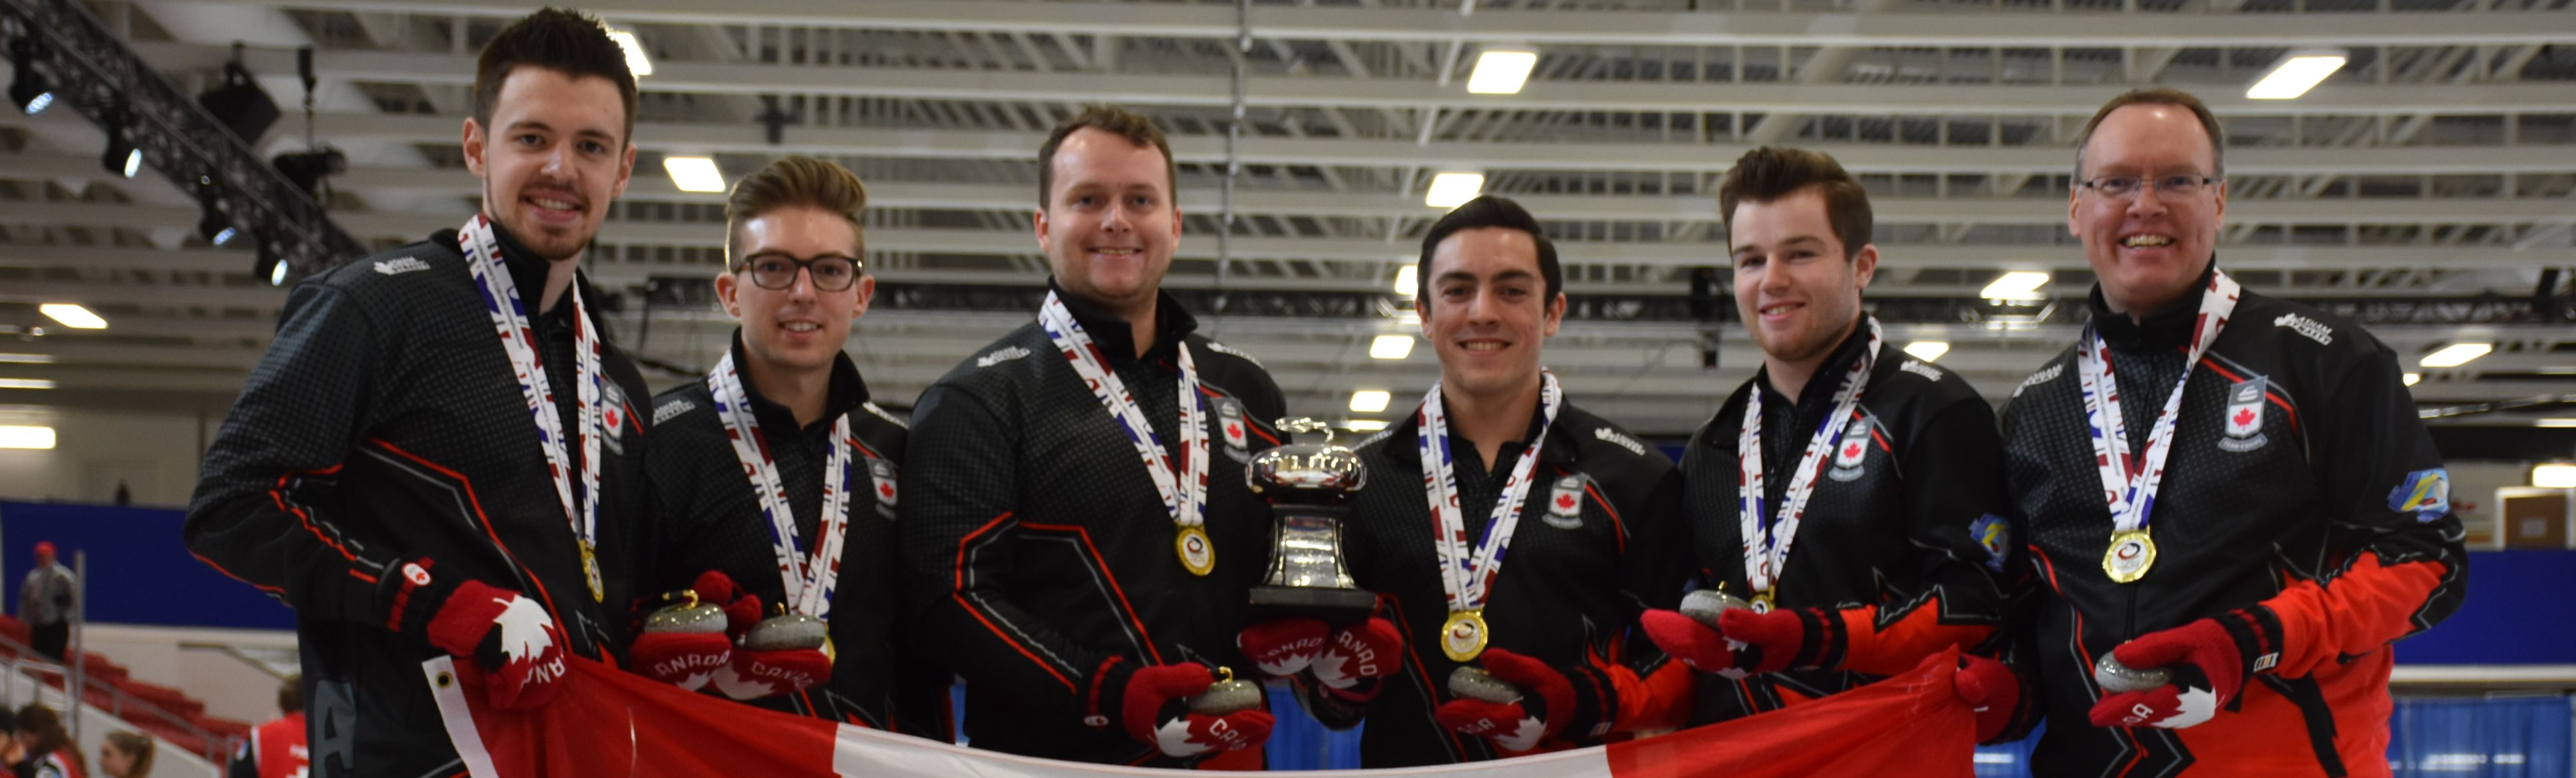 2019 VOIP DEFENDER WORLD JUNIOR CURLING CHAMPIONSHIP - Team